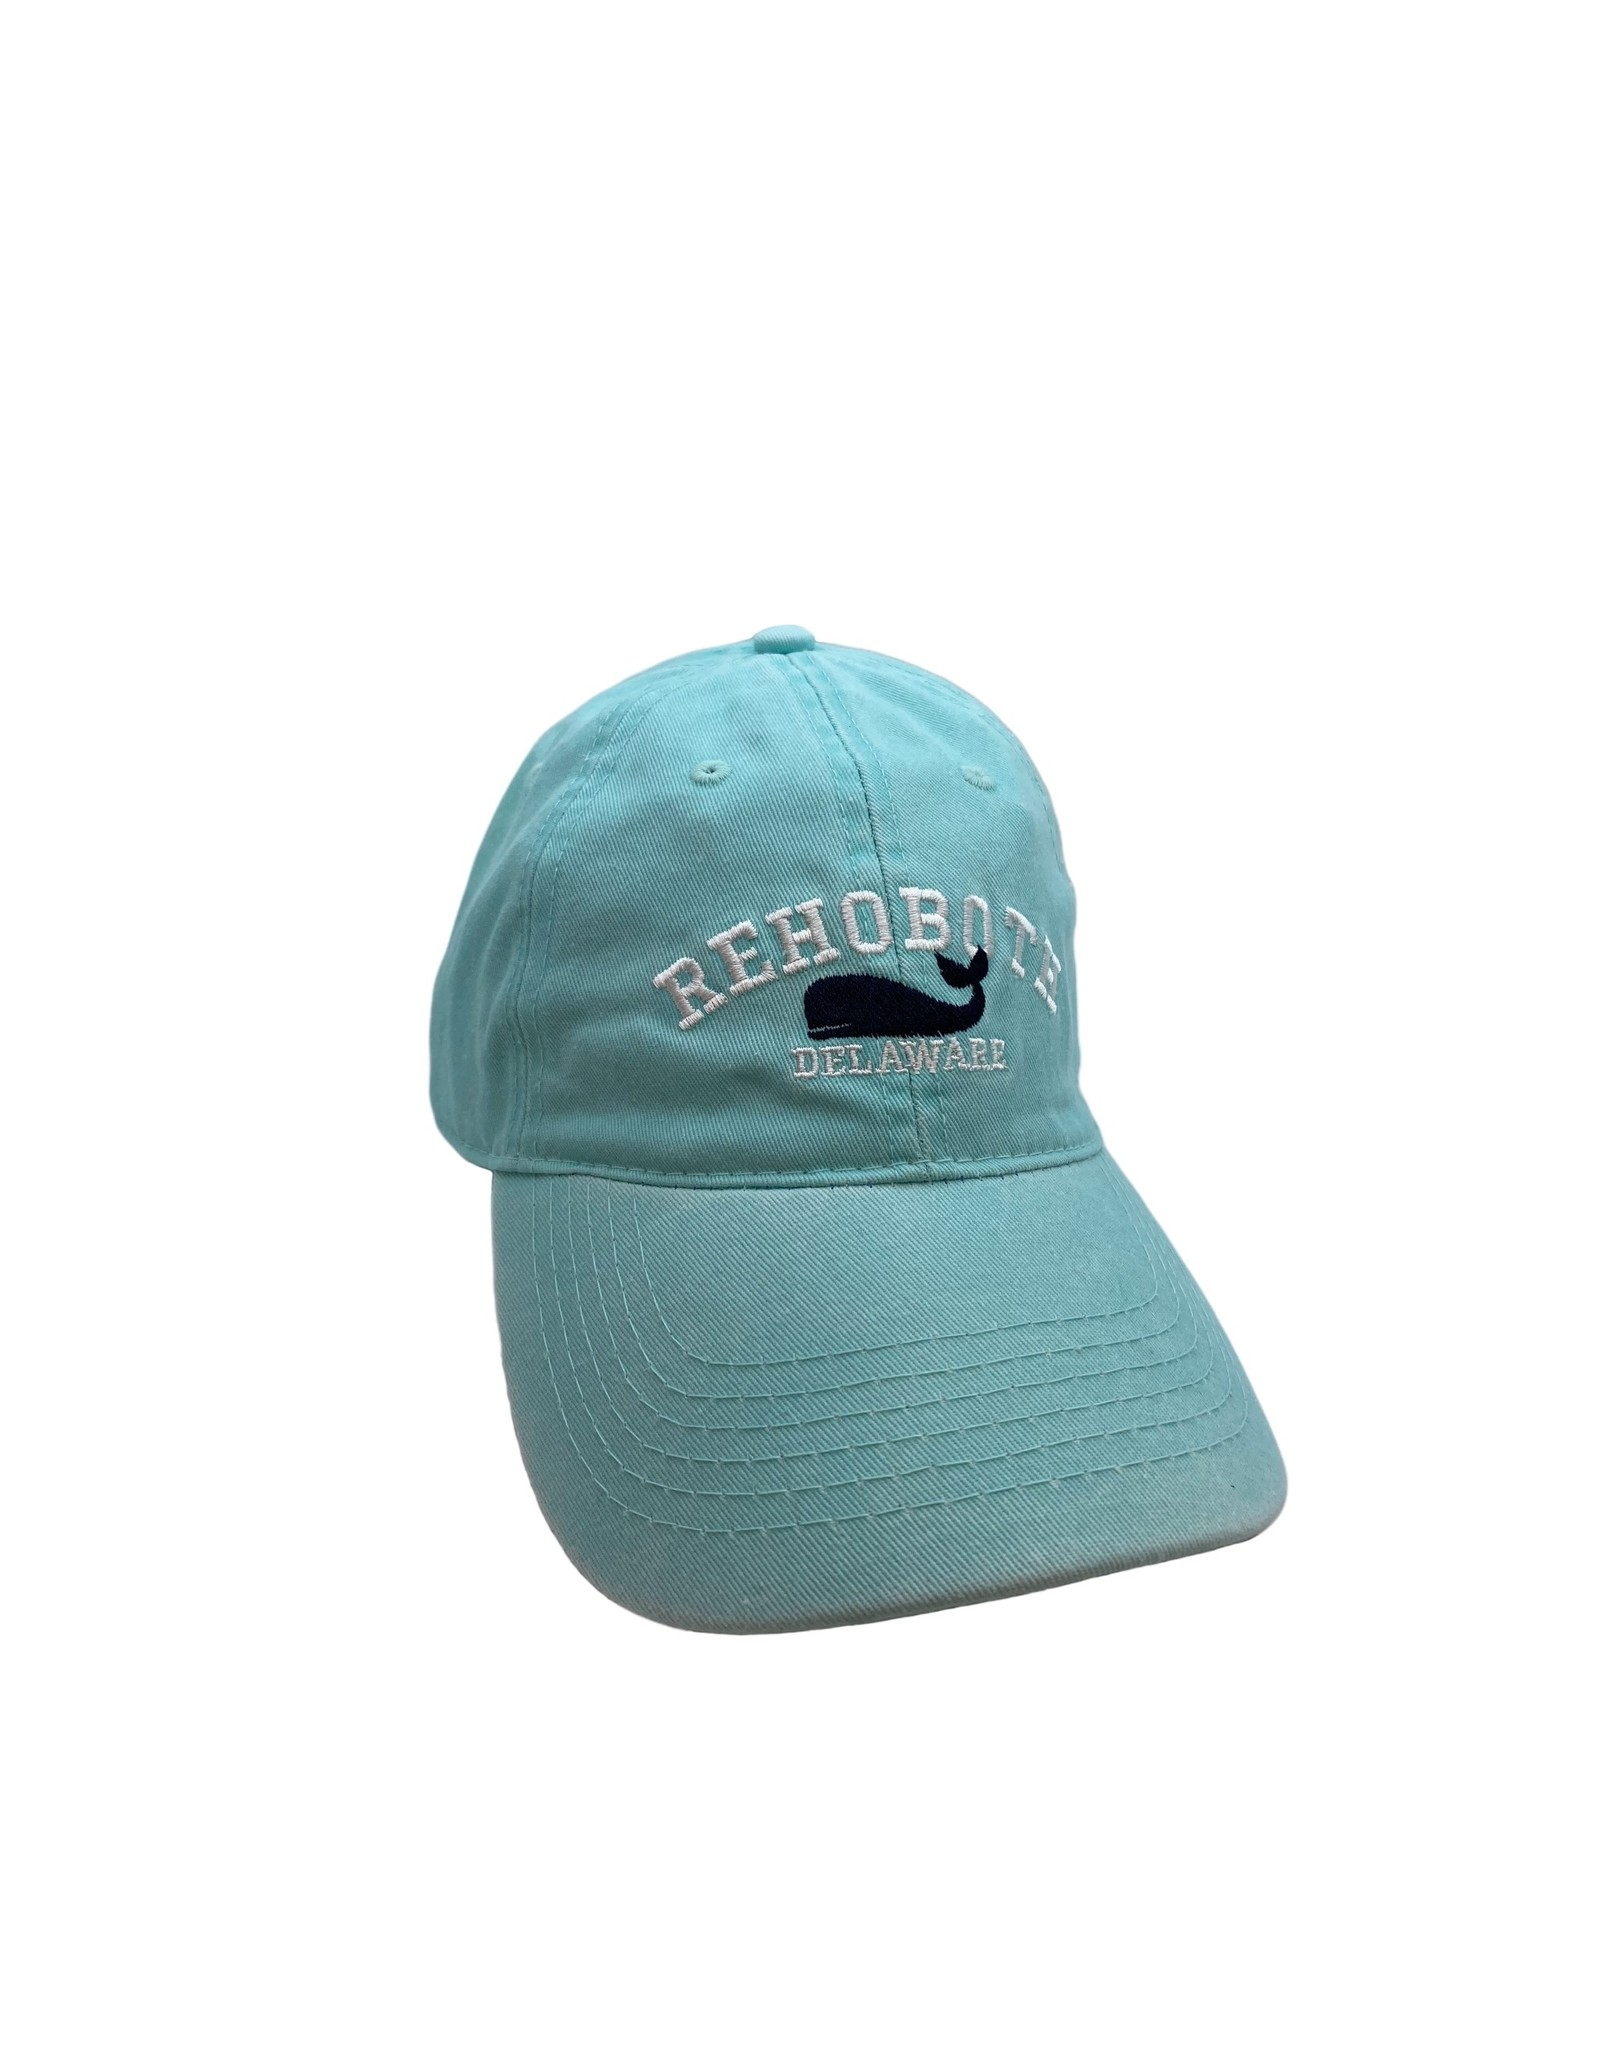 REHOBOTH LIFESTYLE CLASSIC COTTON BEACH HAT ADJUSTABLE OS MINT WHALE